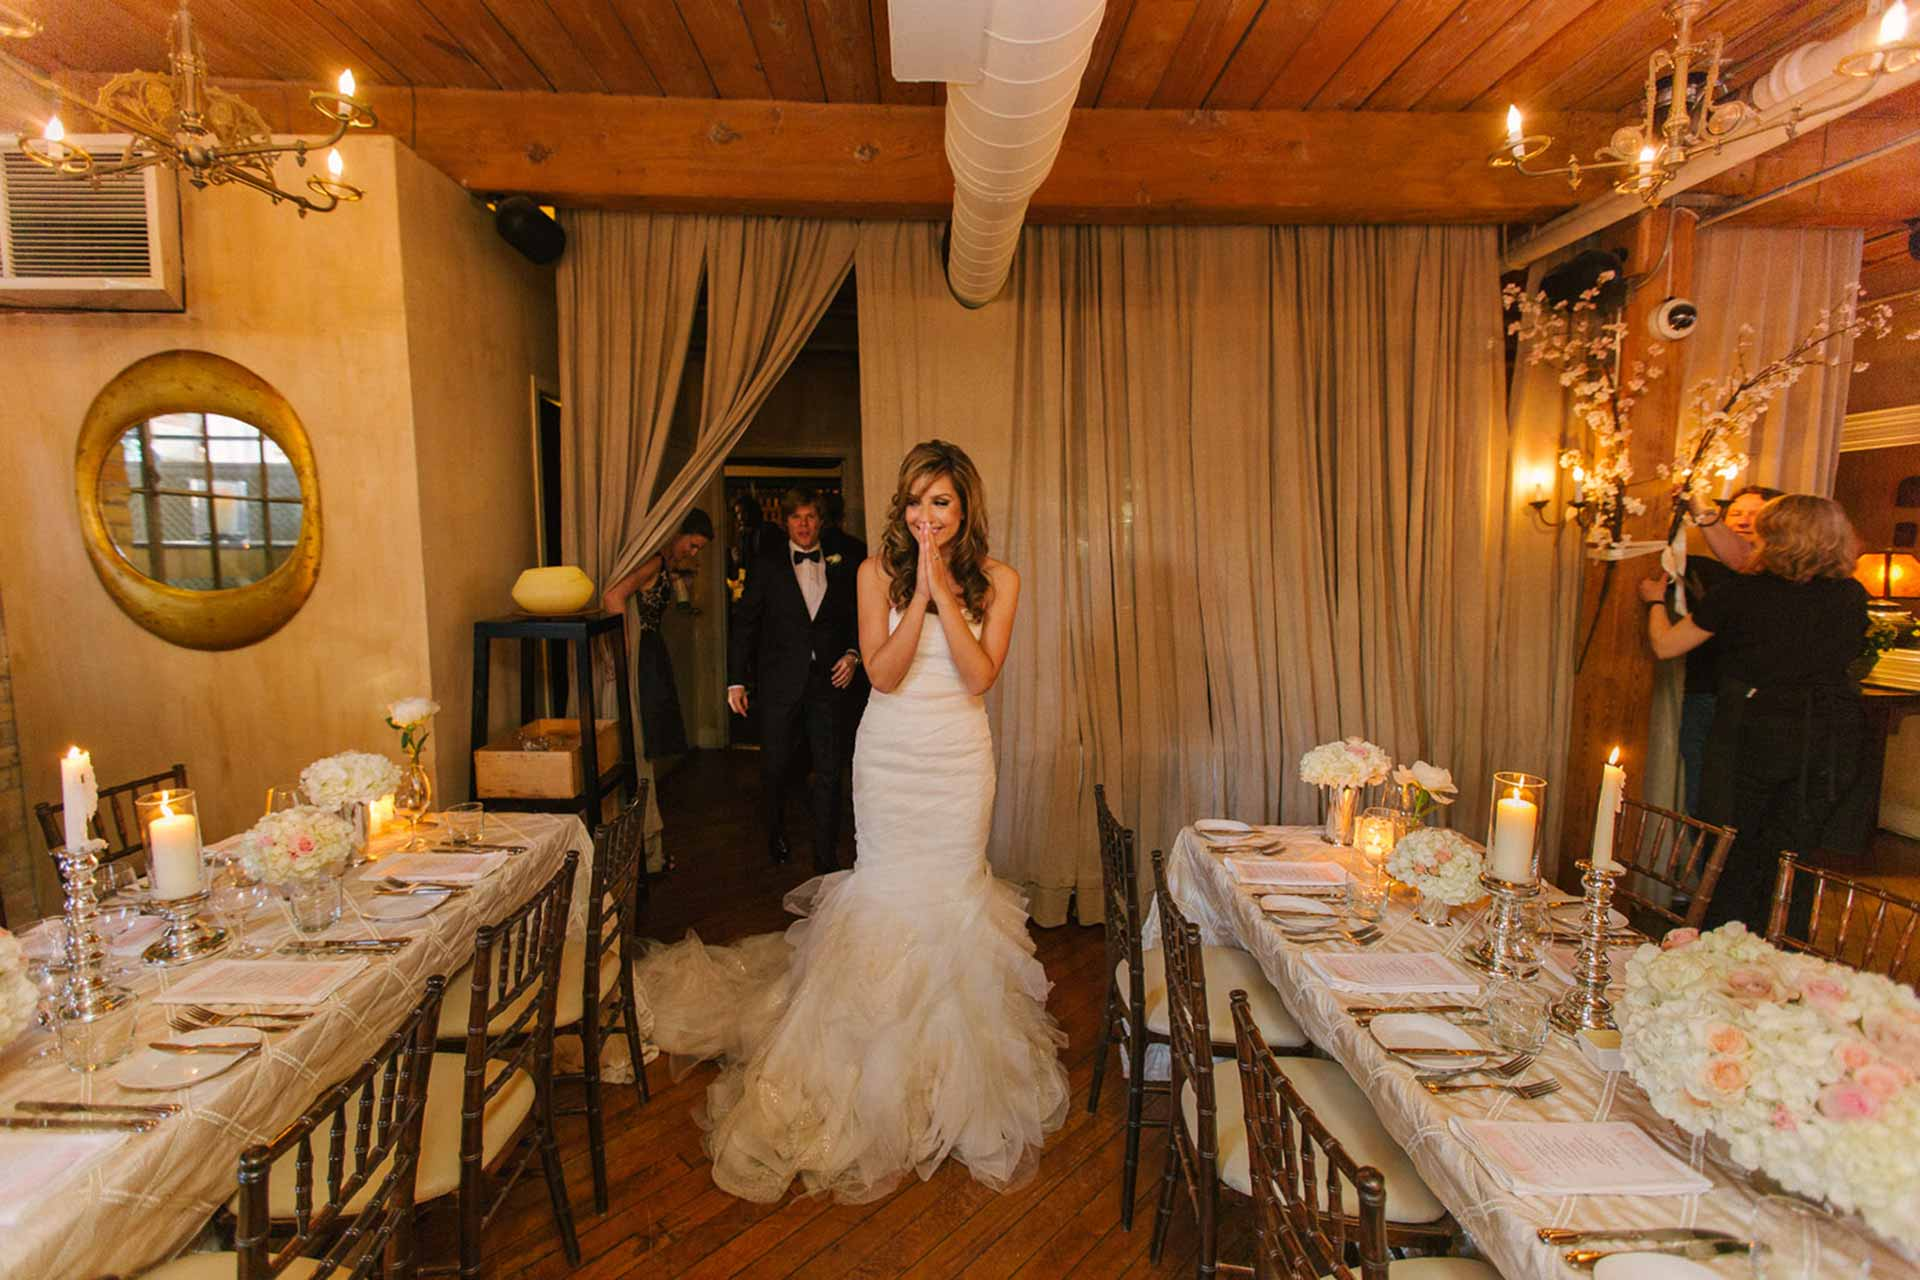 Elegant Toronto Wedding Venue - Restaurant Reception Tablescape